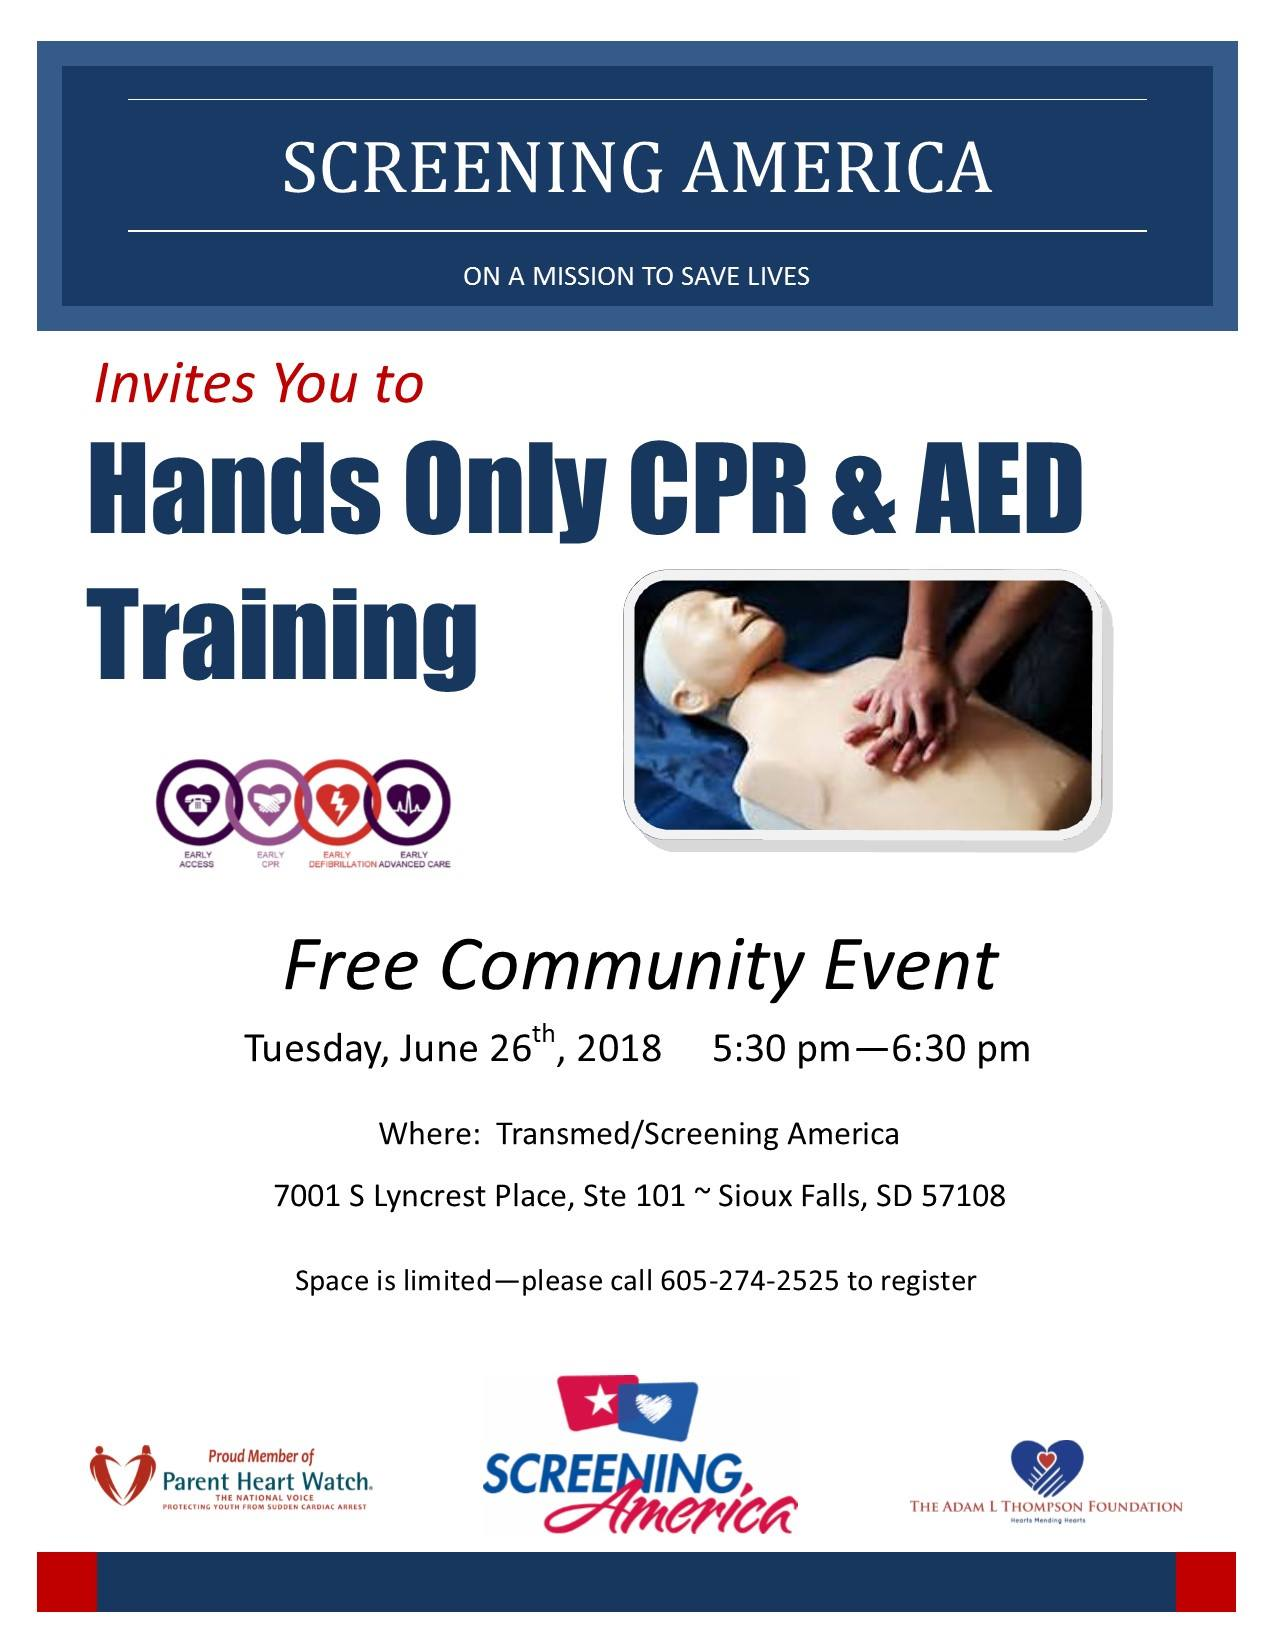 Free Cpr Aed Training Tuesday June 26th 530 Pm Screening America